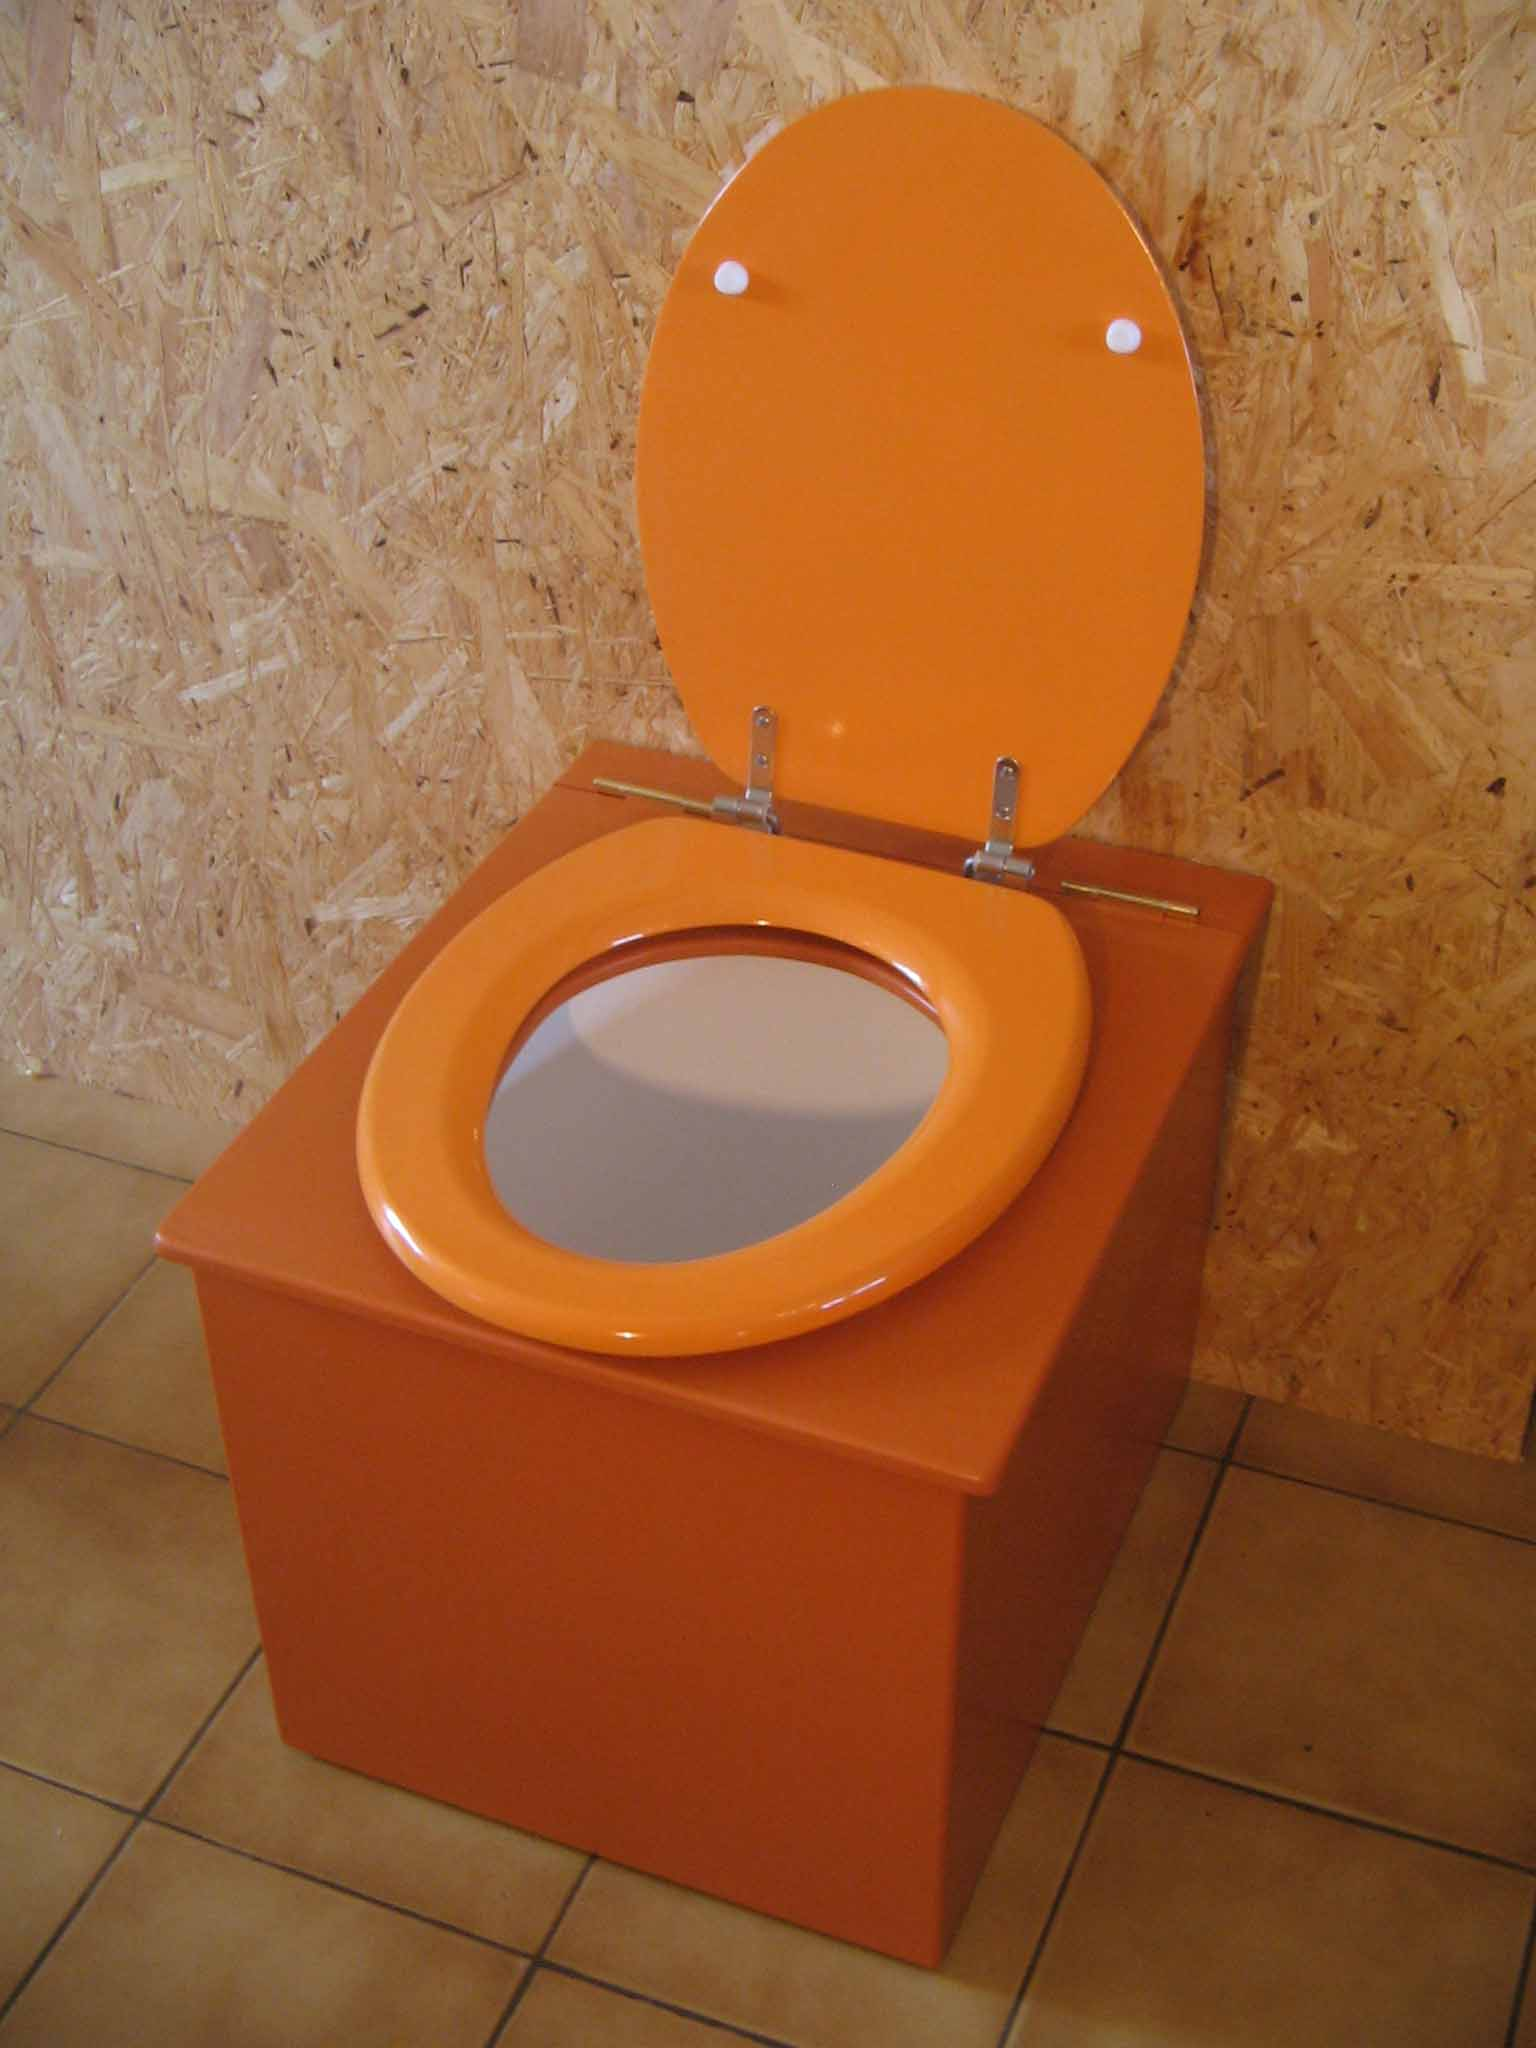 toilette-seche-prix-orange